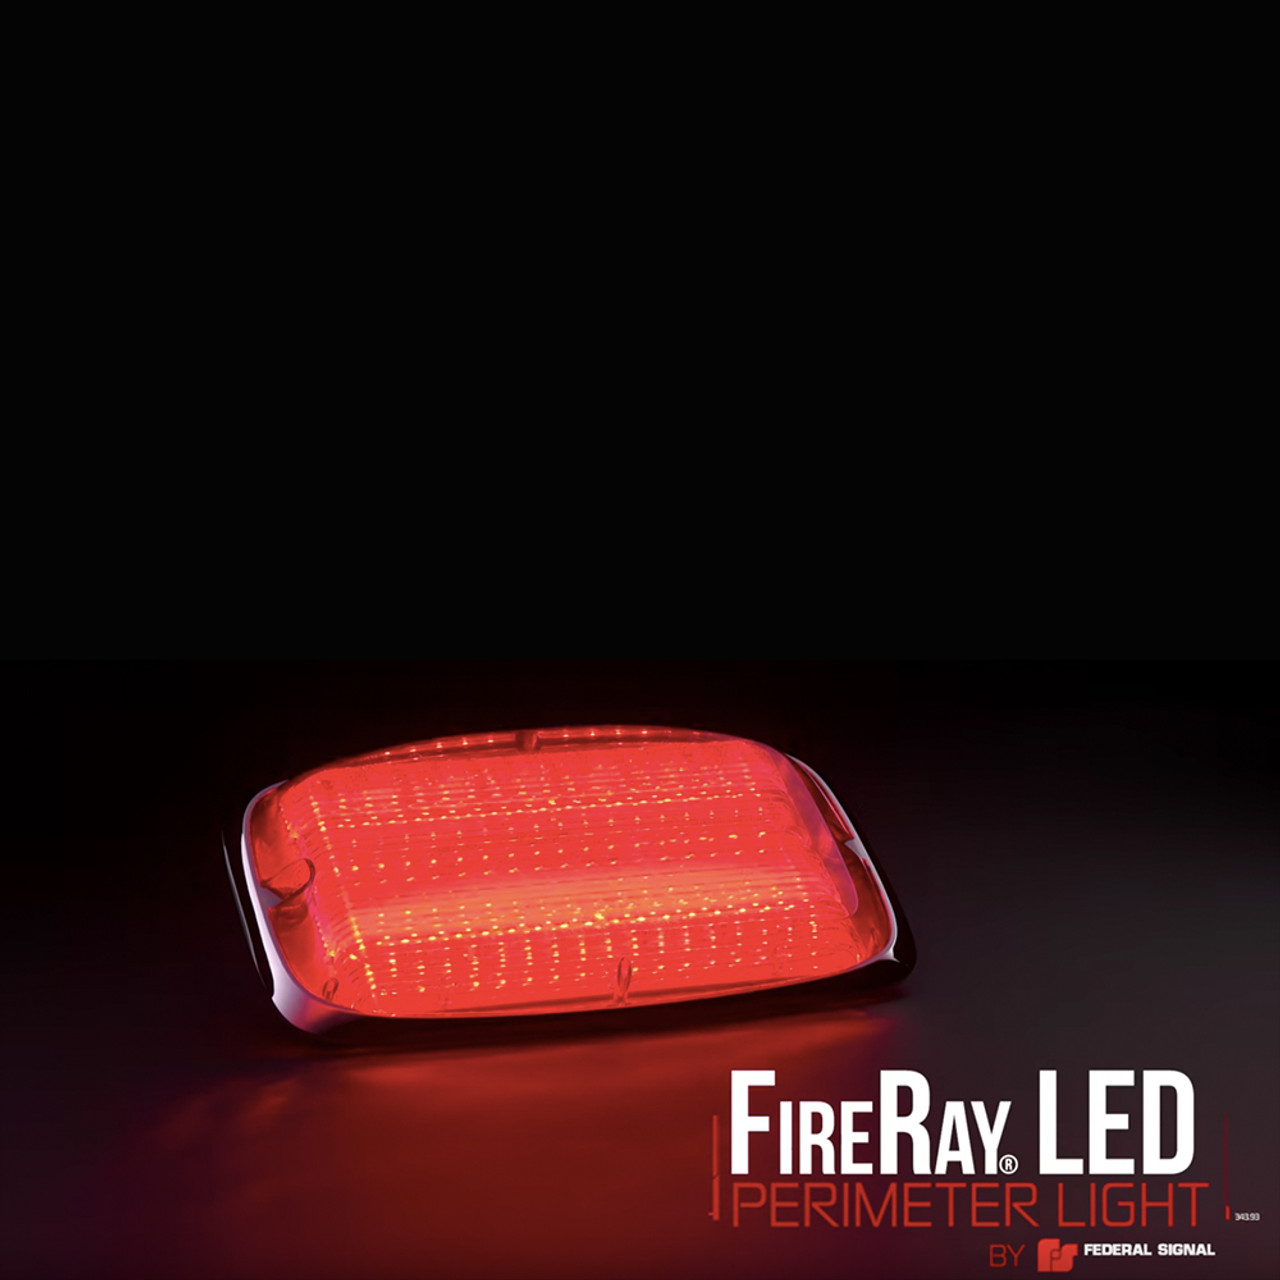 Federal Signal FireRay® LED Perimeter Surface Mount Light Head 9x7, single or split color